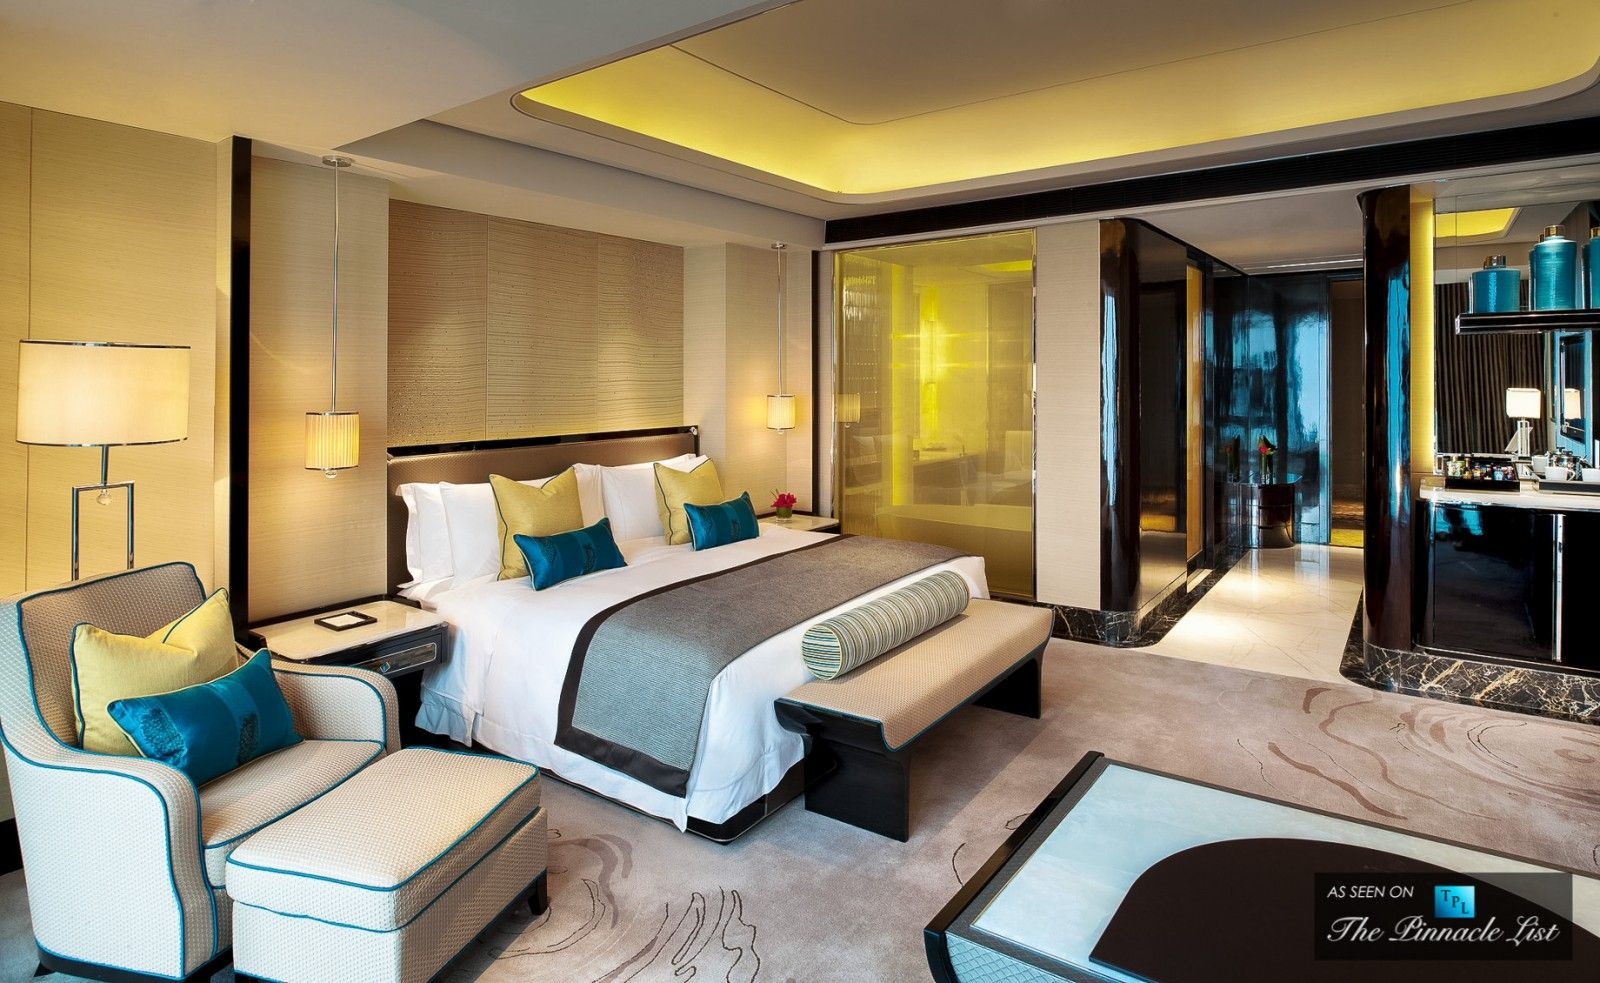 Comfort abounds in this hotel suite st regis luxury for Amazing luxury hotels